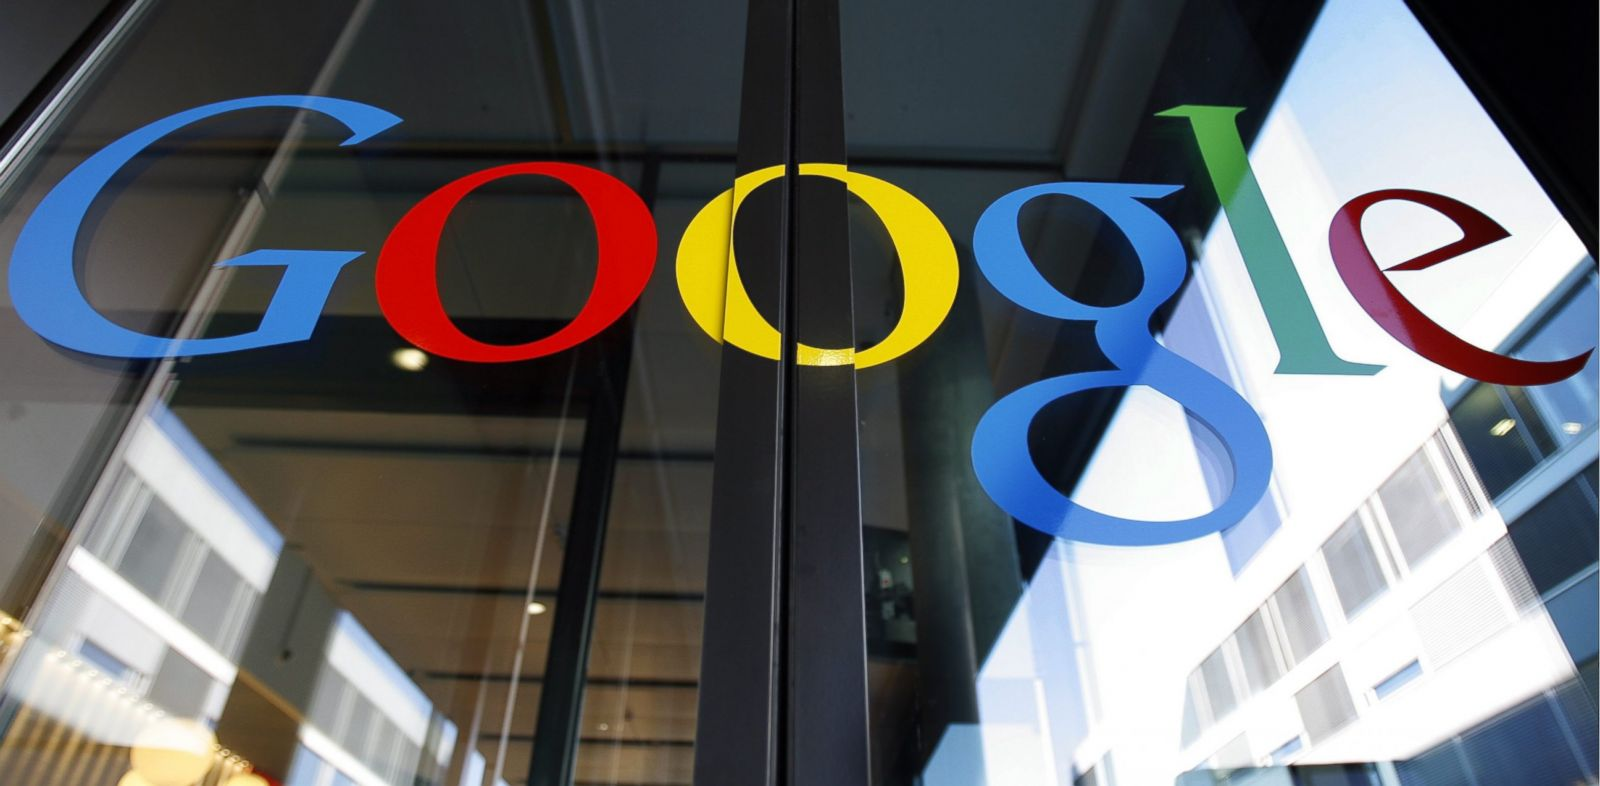 PHOTO: The Google logo is seen on the front door of the Google Engineering center in Zurich, Switzerland, in this March 6, 2008 photo.